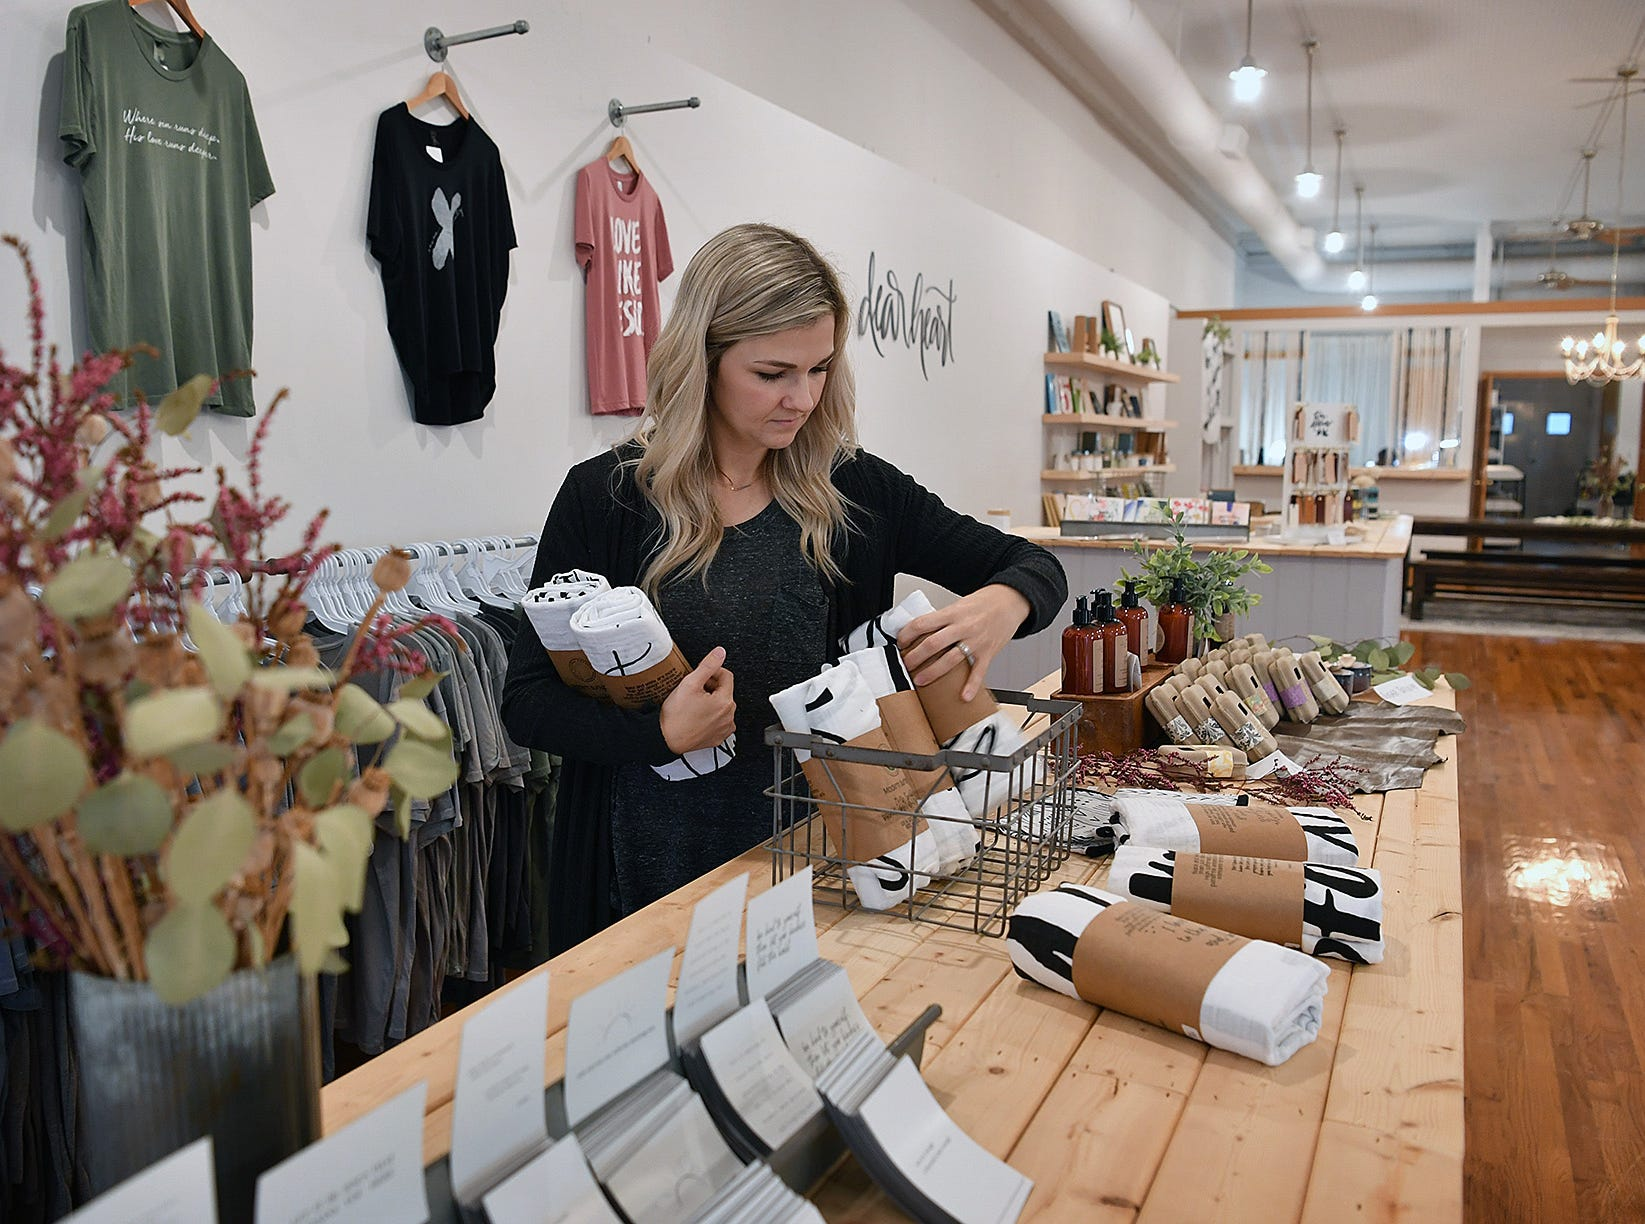 Dear Heart owner Nichole Kirk in her first store located in Henrietta. Her second location, Ruth & Esther, opened in Wichita Falls in August.